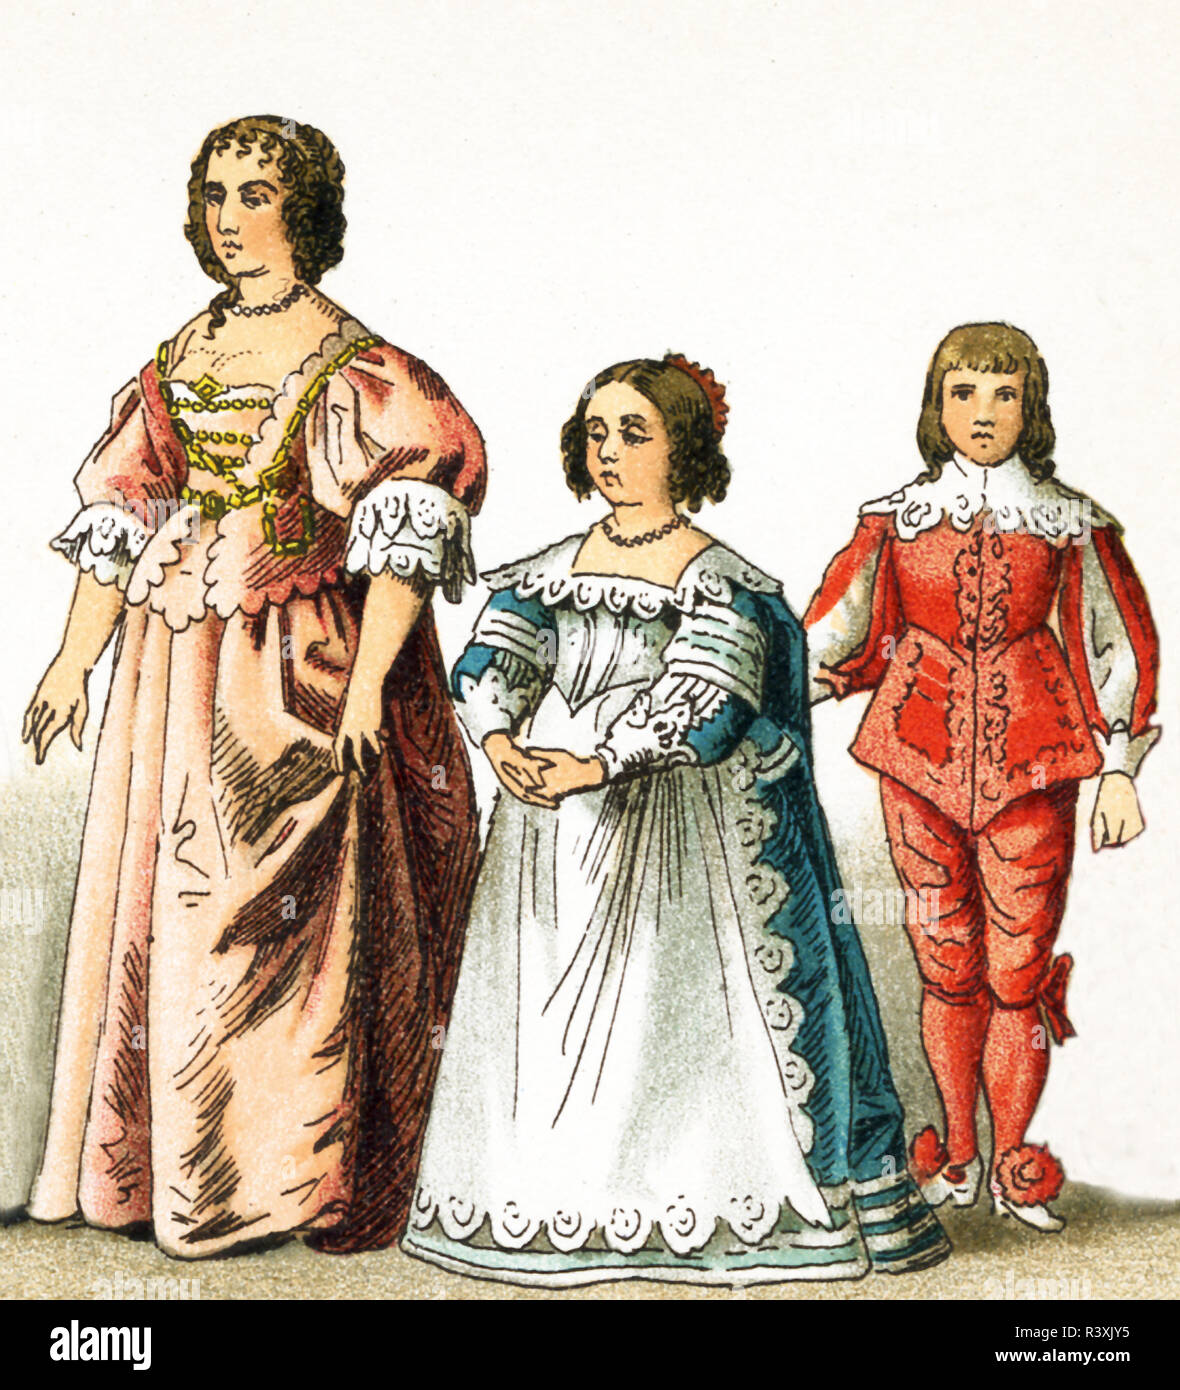 The figures represented here are all English people from the 1600s. They are, from left to right: Henrietta Maria, Consort of Charles I, daughter of Charles I, son of Charles I. Charles I was king of England, Scotland, and Ireland from 1625 until his execution in 1649. He was a Stuart and the second son of James VI of Scotland. The illustration dates to 1882. - Stock Image